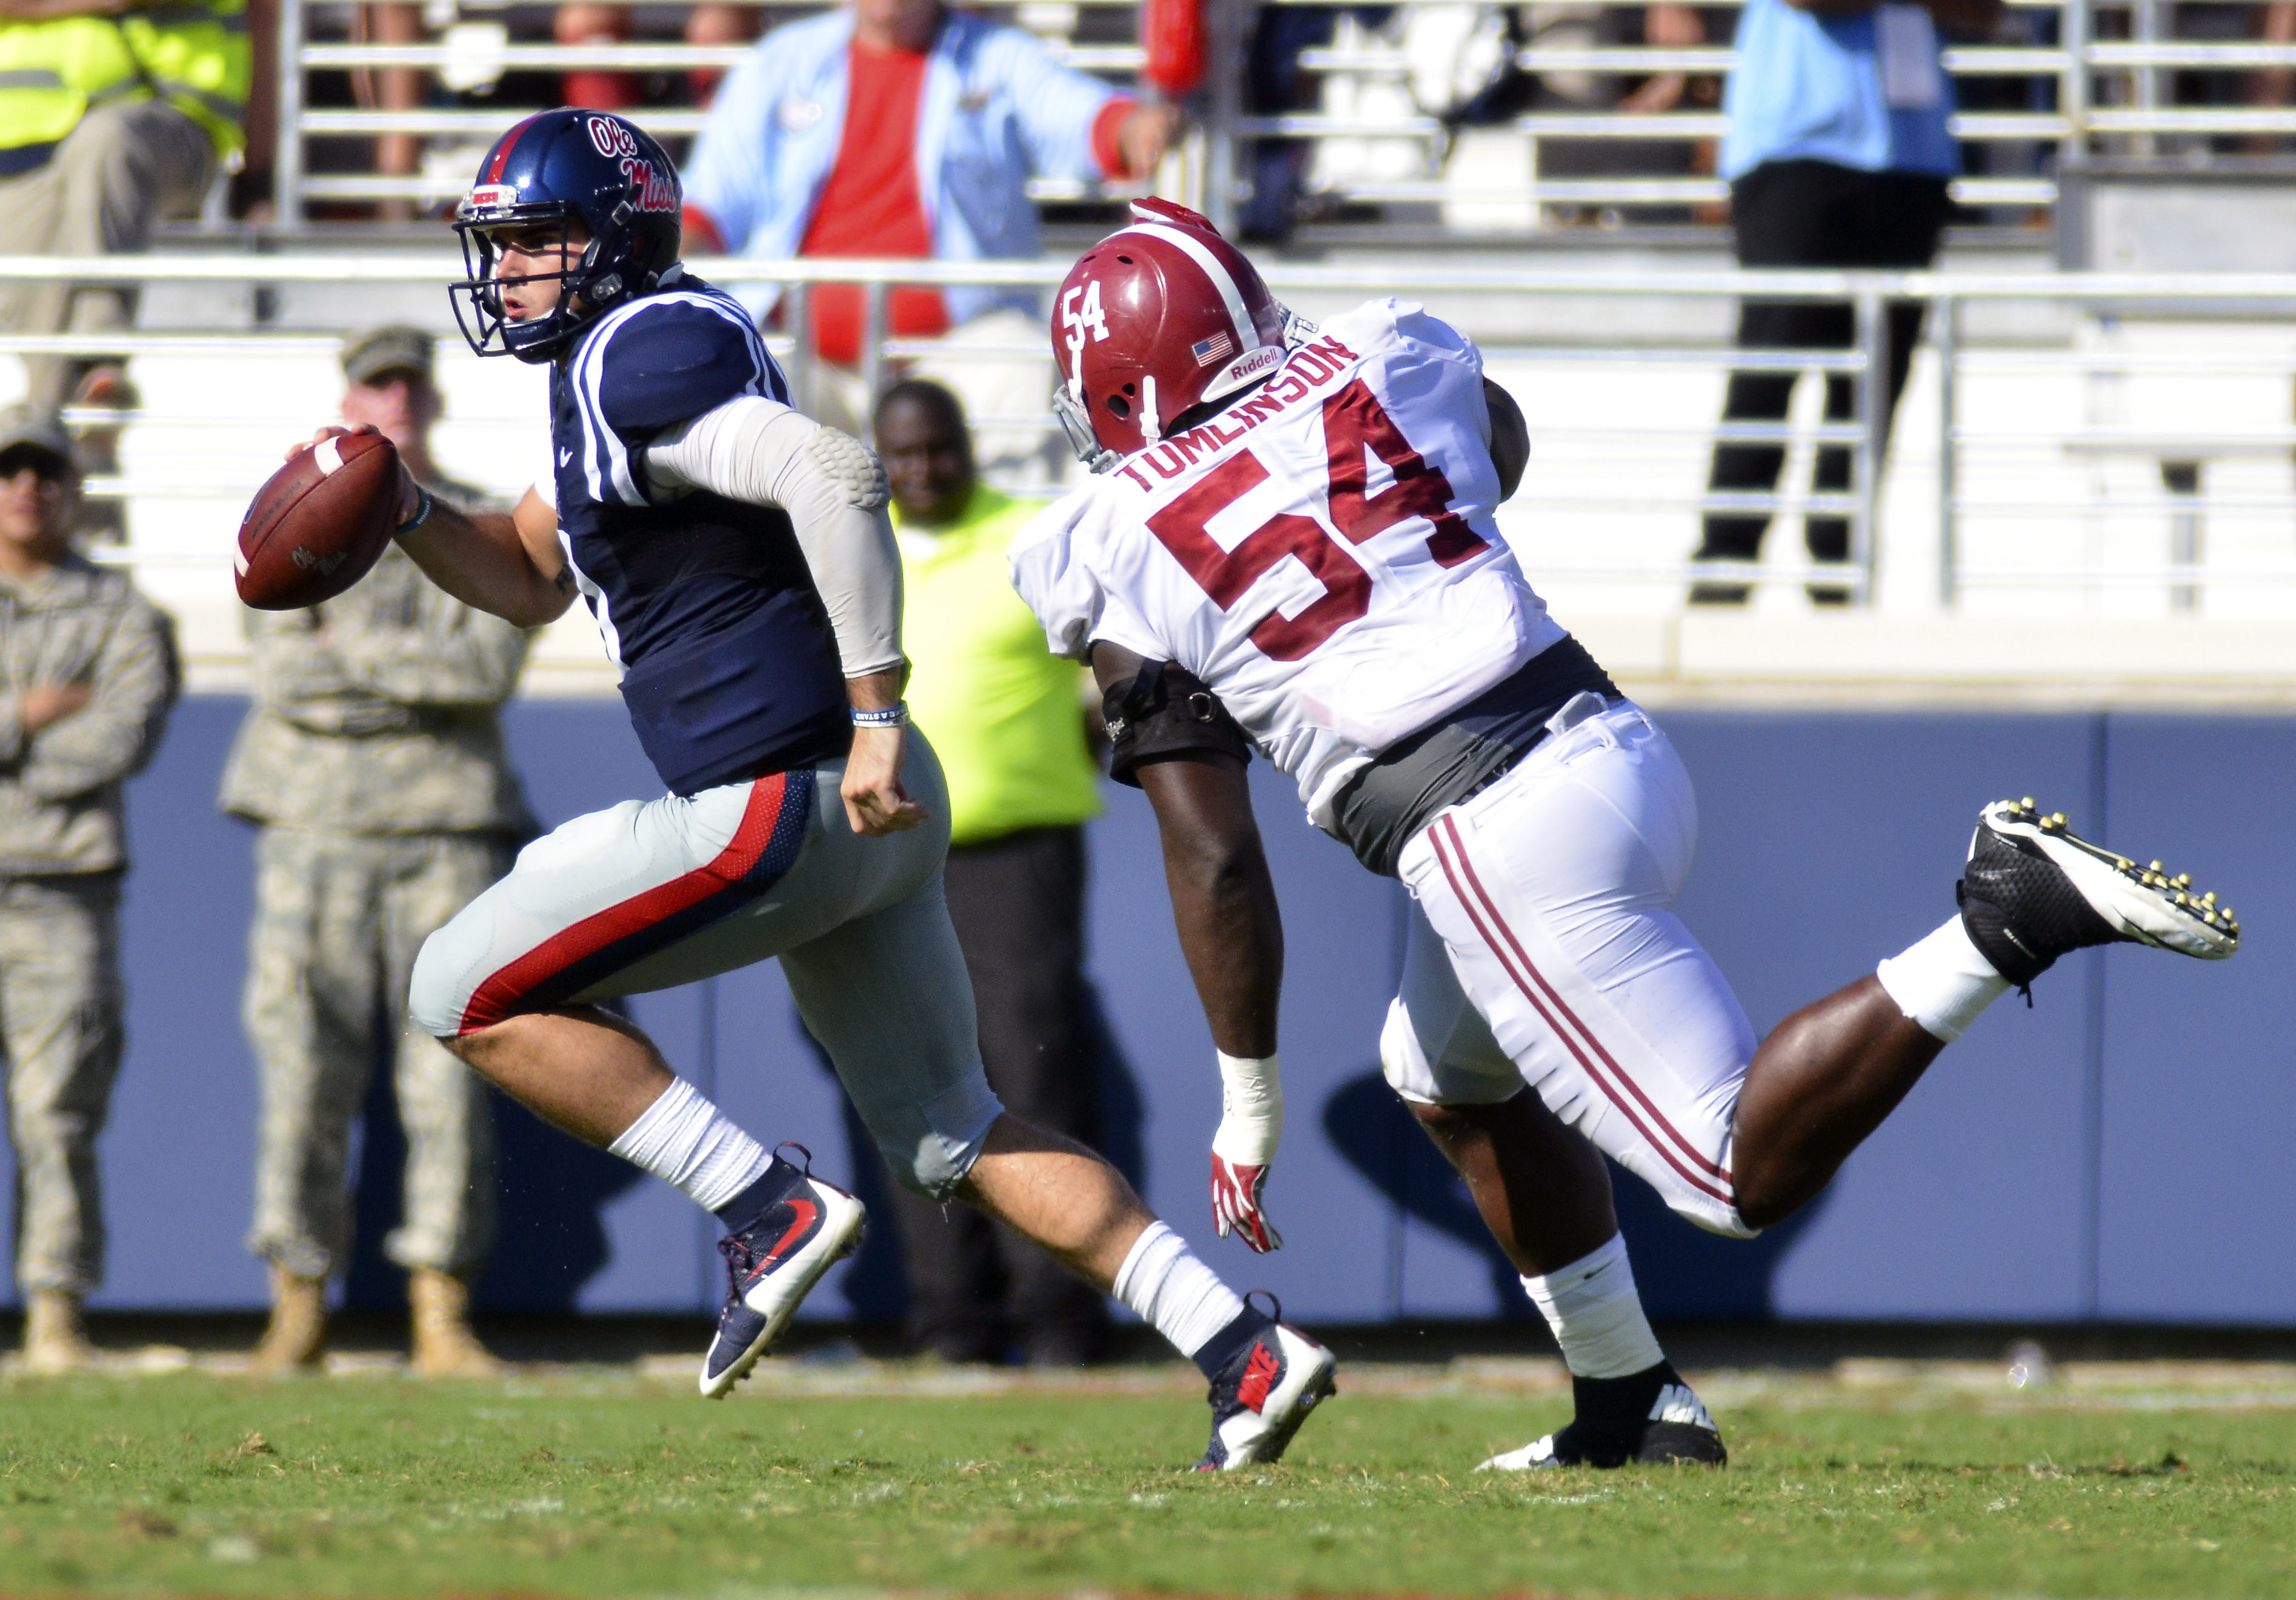 Sep 17, 2016; Oxford, MS, USA; Mississippi Rebels quarterback Chad Kelly (10) attempts to avoid Alabama Crimson Tide defensive lineman Dalvin Tomlinson (54) during the second quarter of the game at Vaught-Hemingway Stadium. Mandatory Credit: Matt Bush-USA TODAY Sports